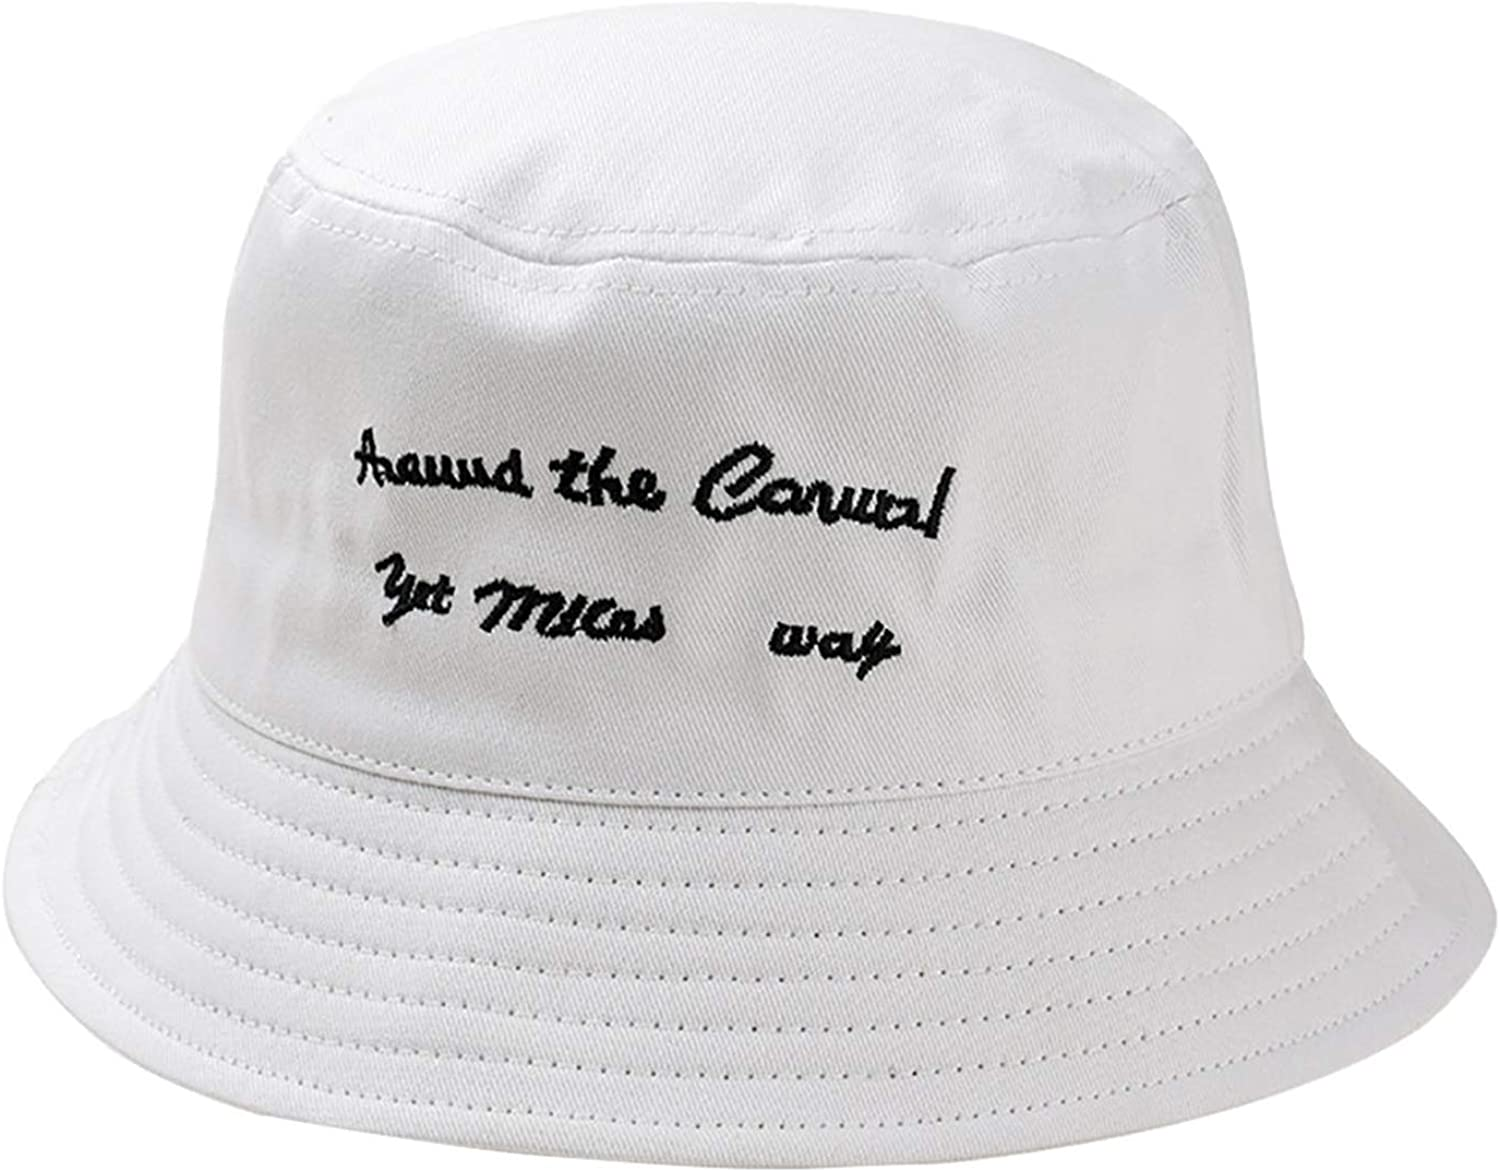 Outdoor Hat Fisherman Hast Unisex Embroidery Letter Hat Fashion Wild Sun Protection Cap Cappello Pescatore